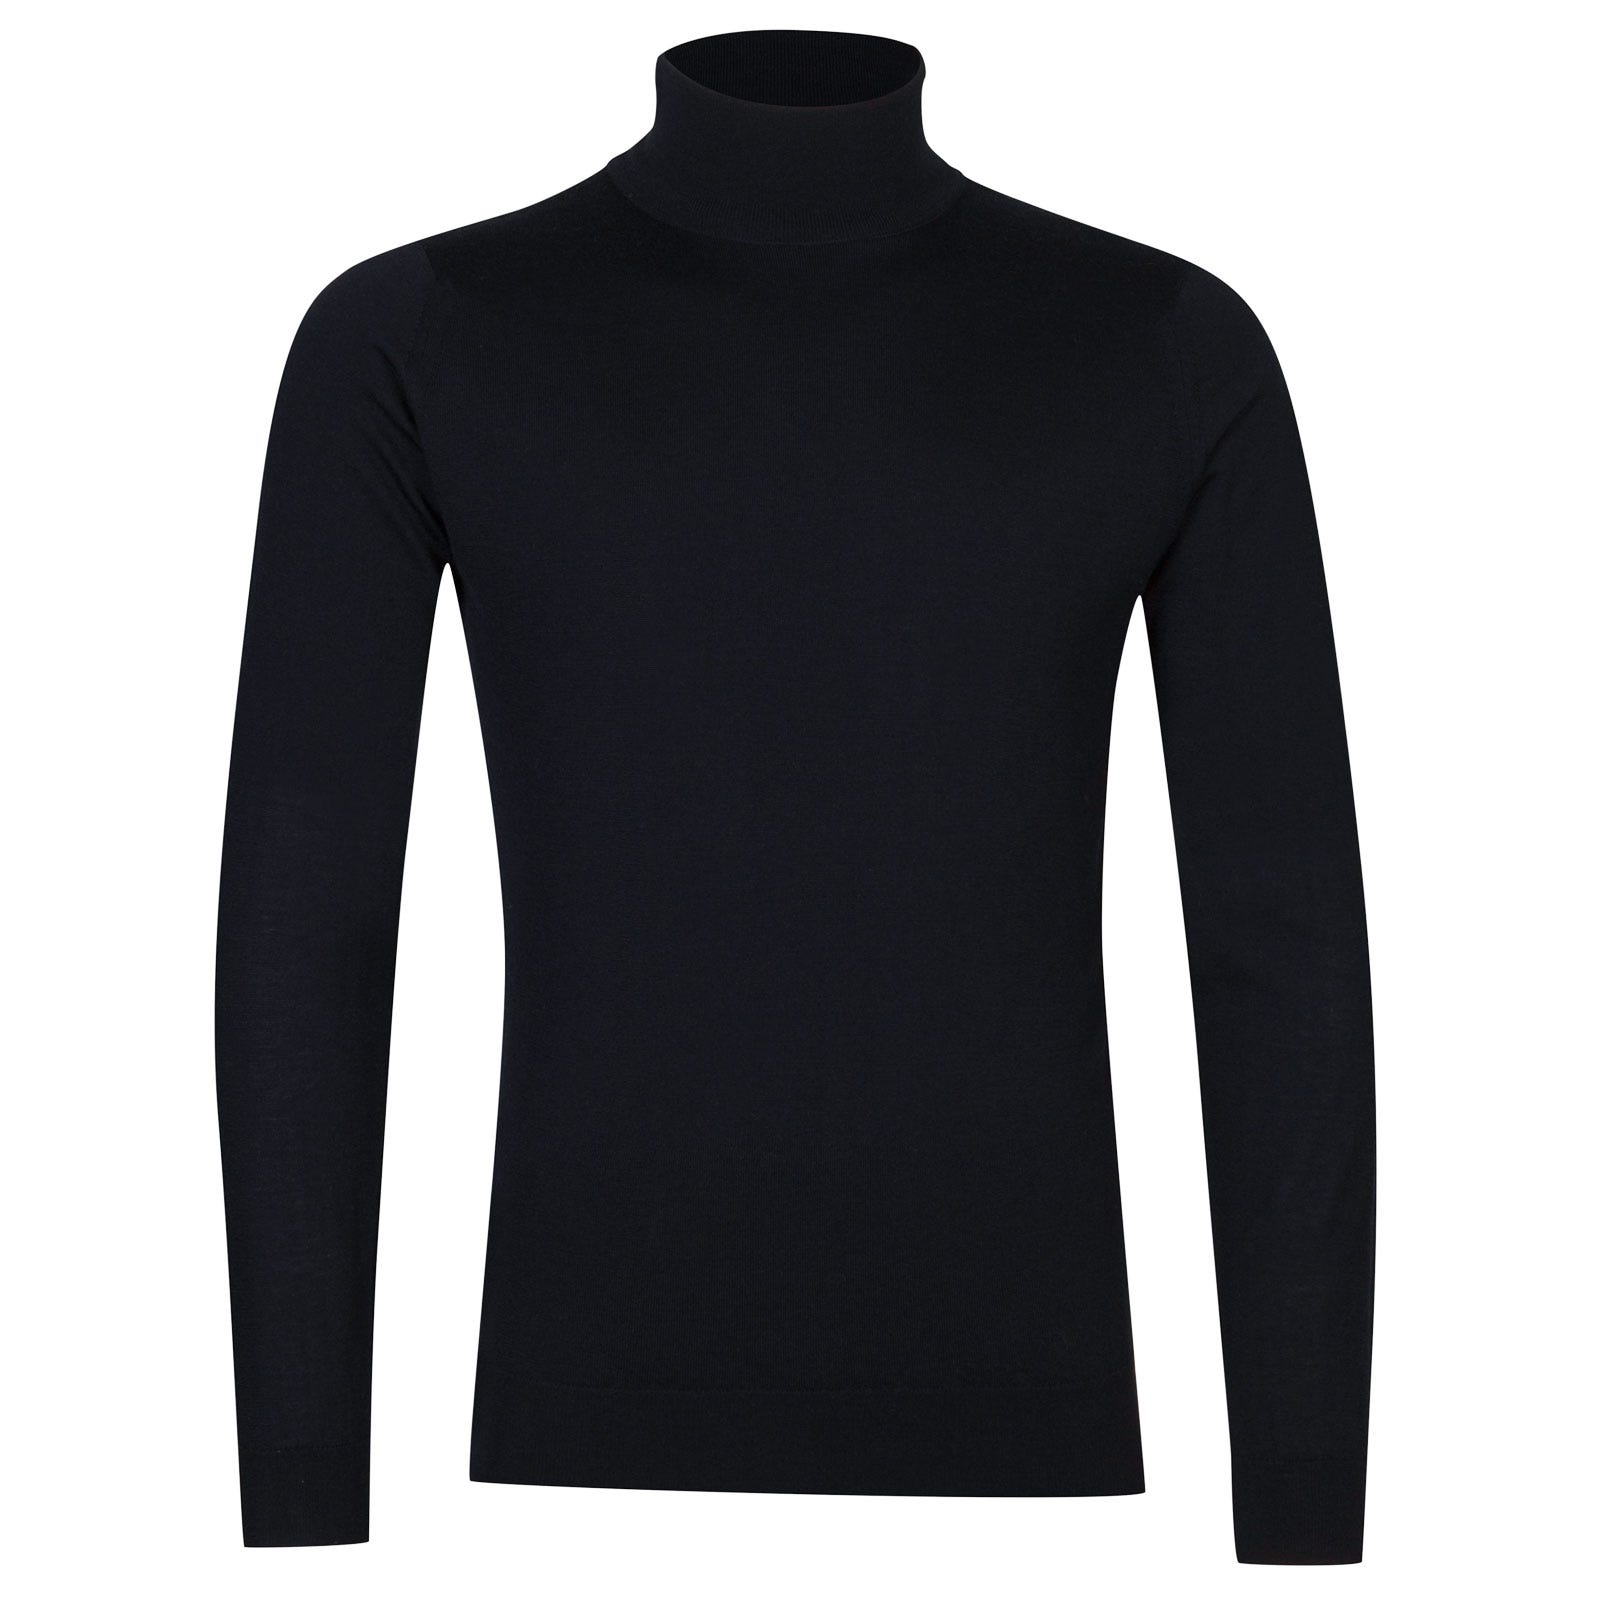 John Smedley Arlington Merino Wool and Cashmere Pullover in Midnight-S